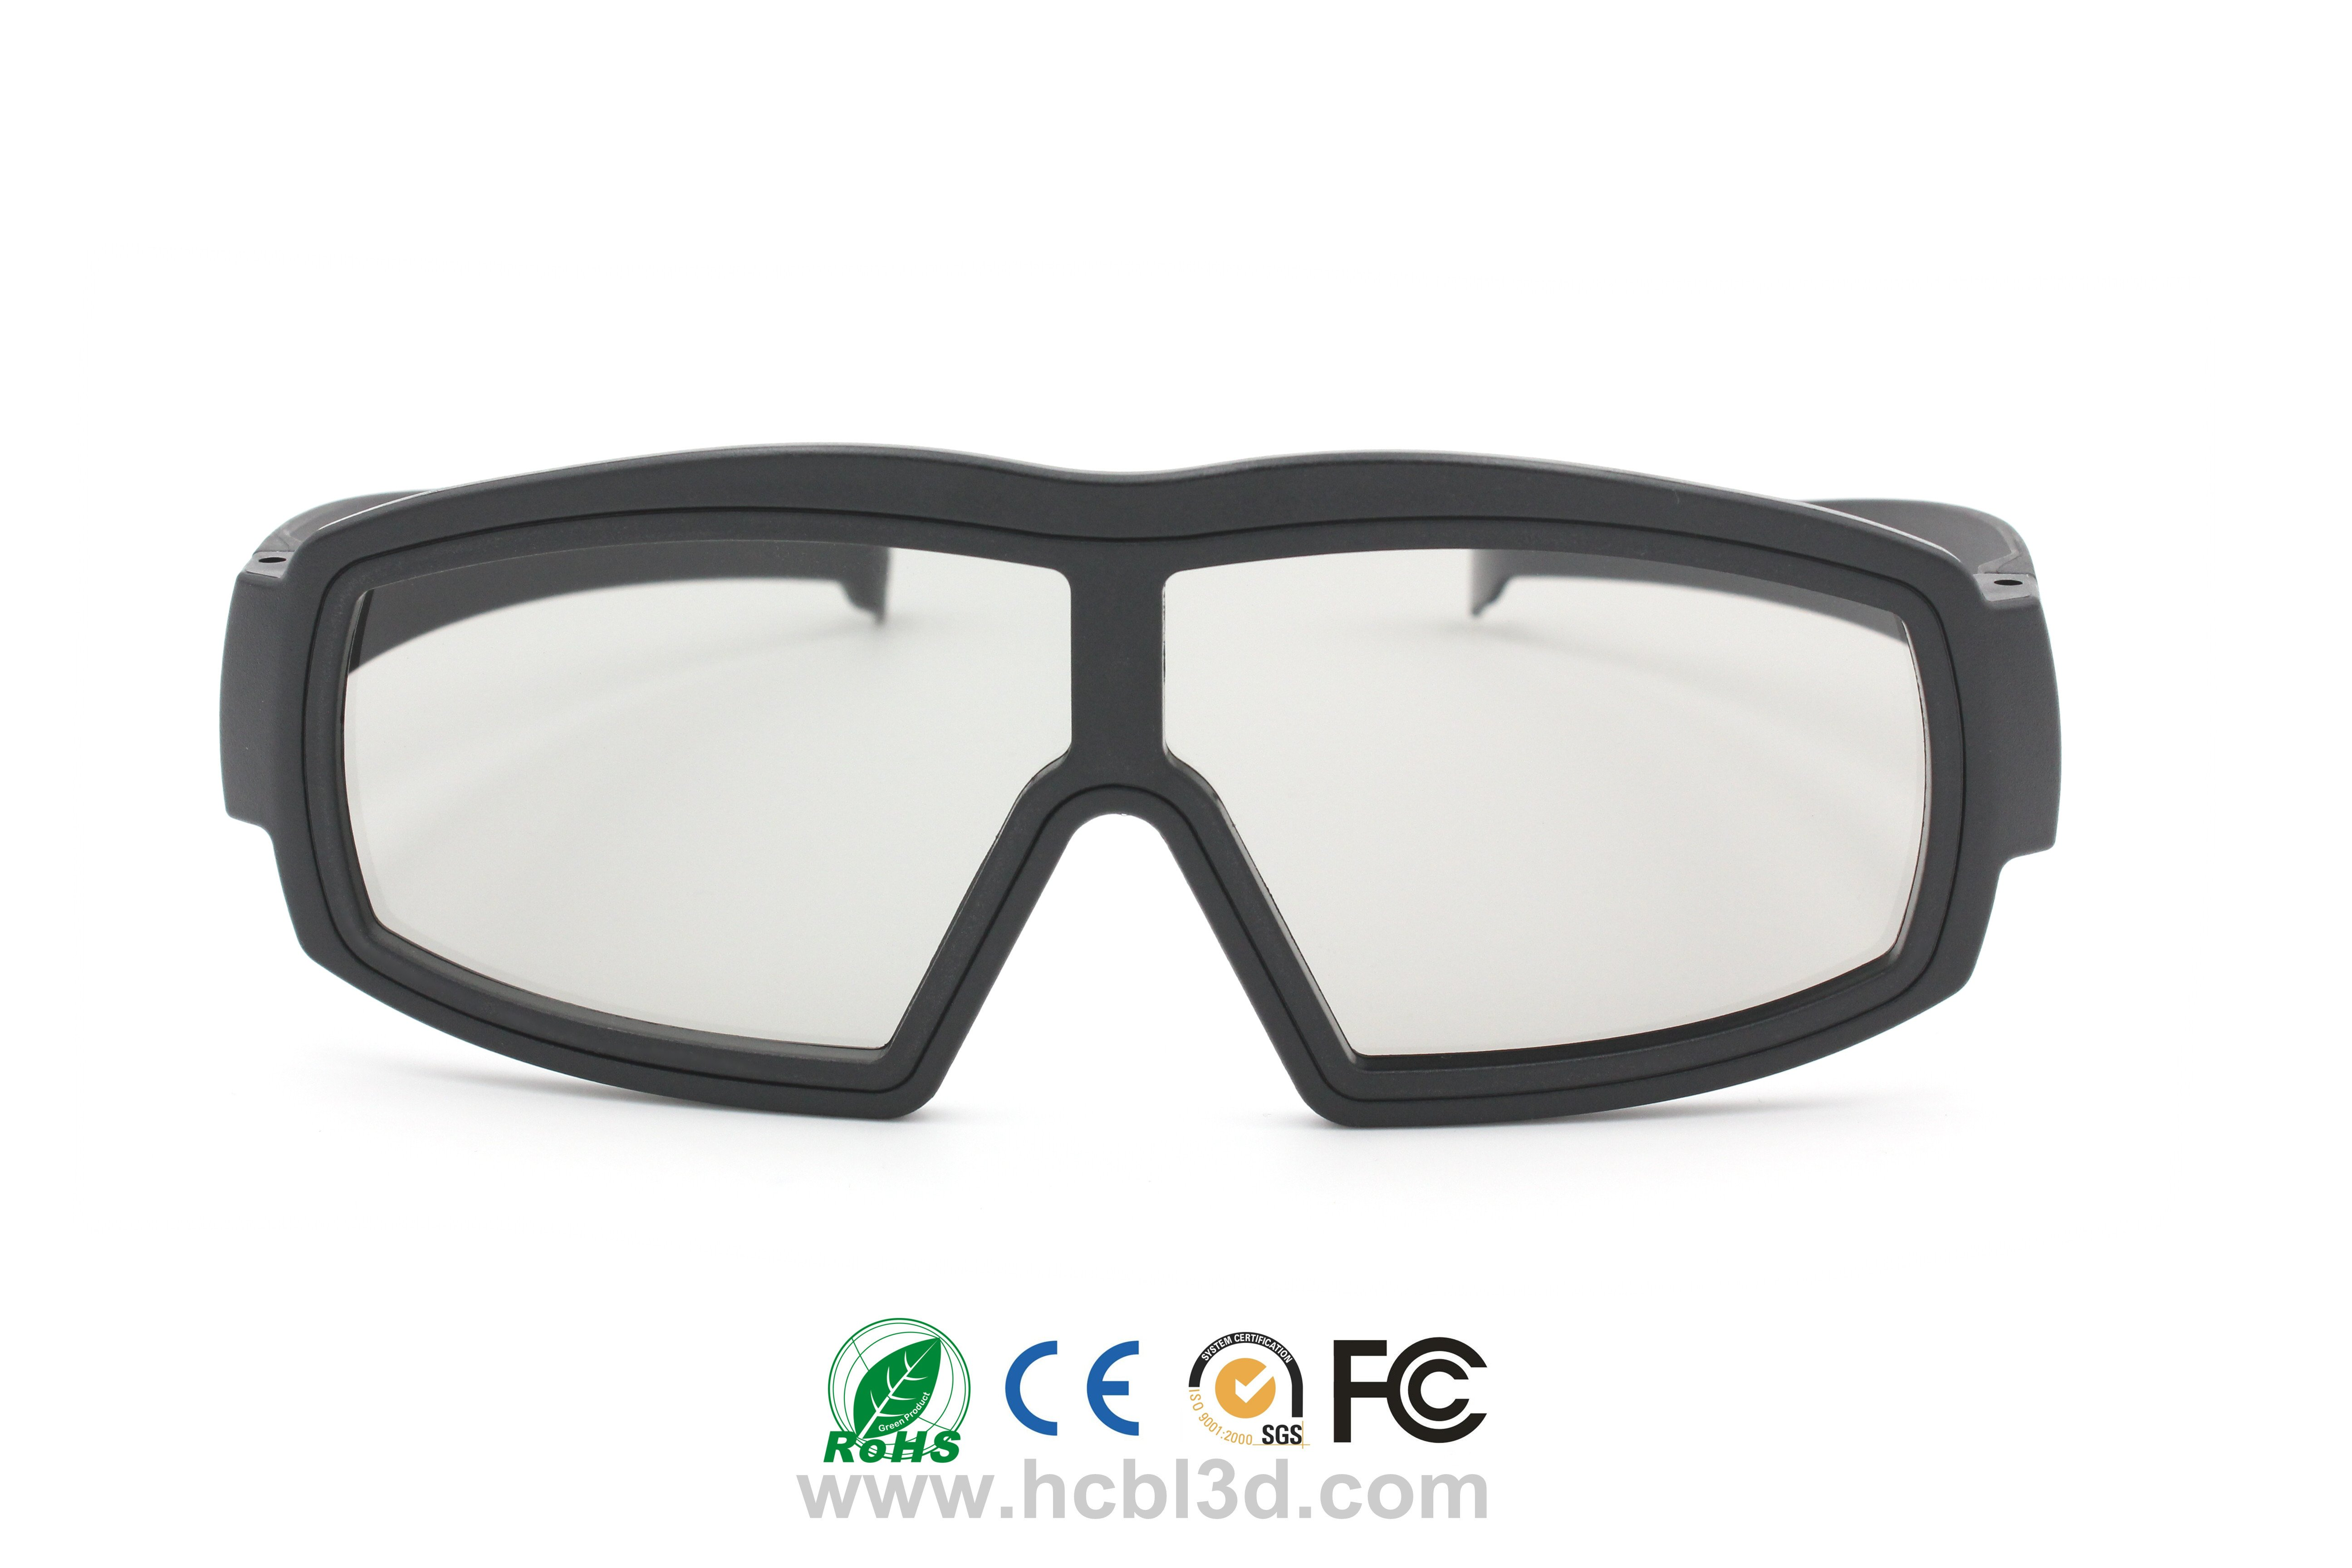 Linear 3D glasses with ABS frame for Comfortable large frame